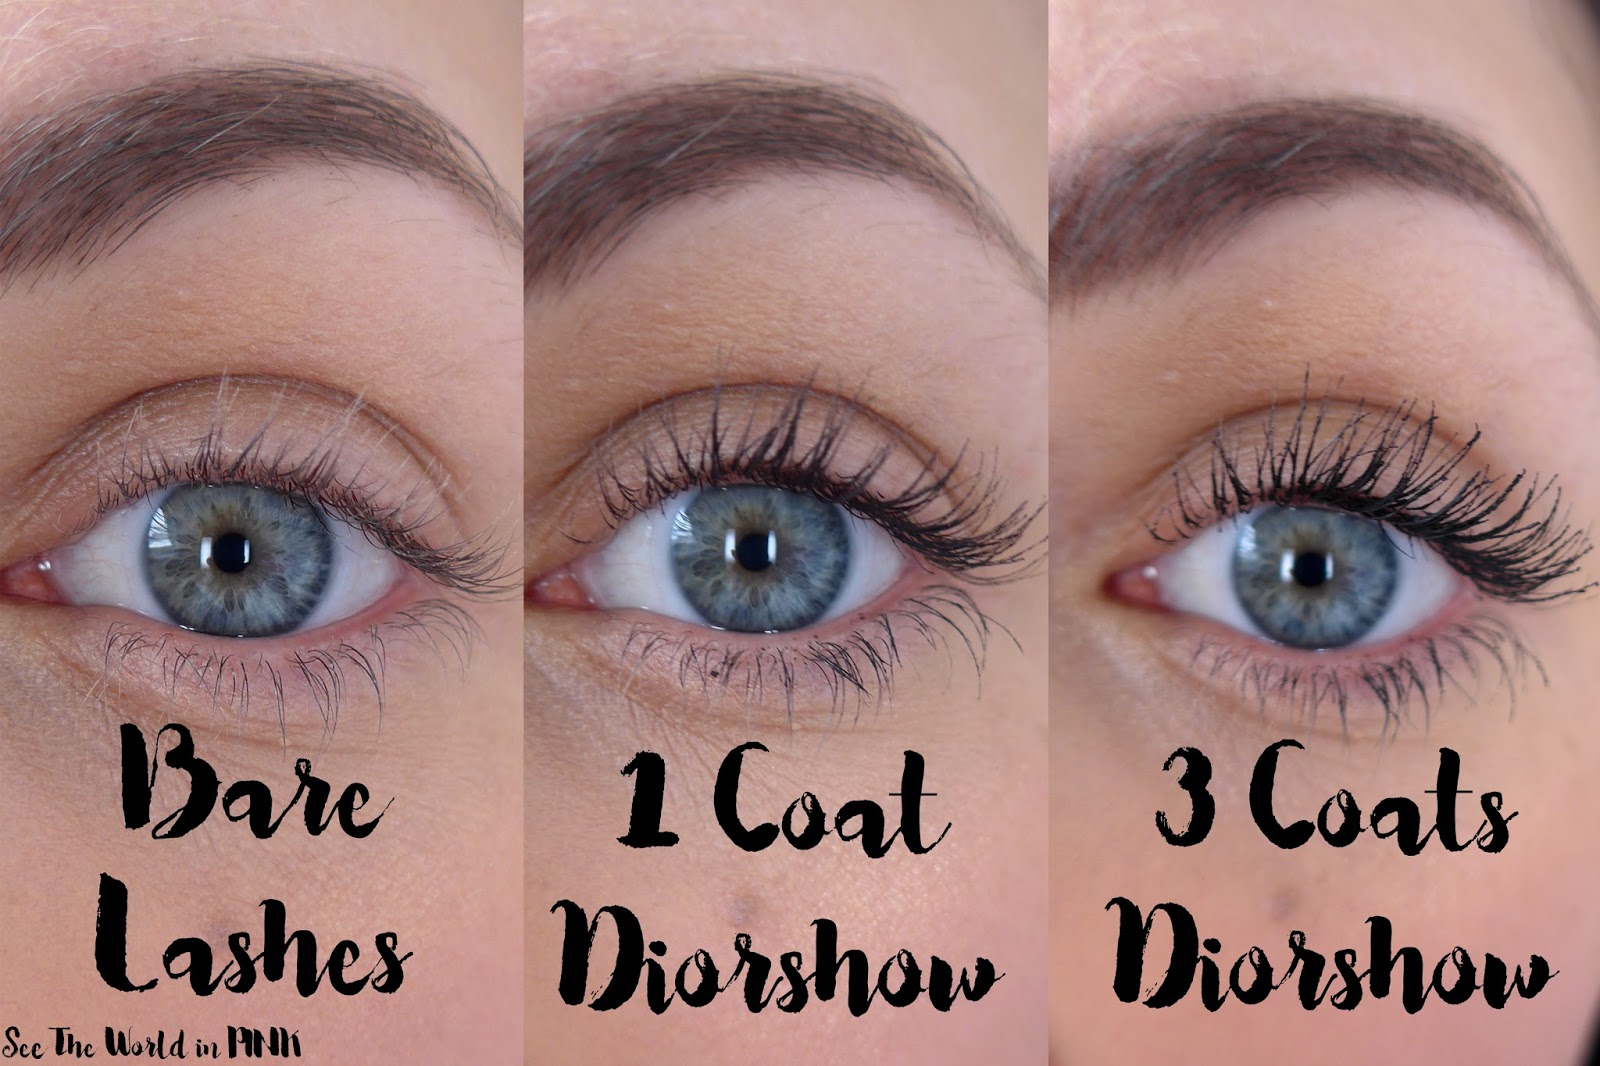 Dior Diorshow Mascara Review - Is It Worth the Splurge?!